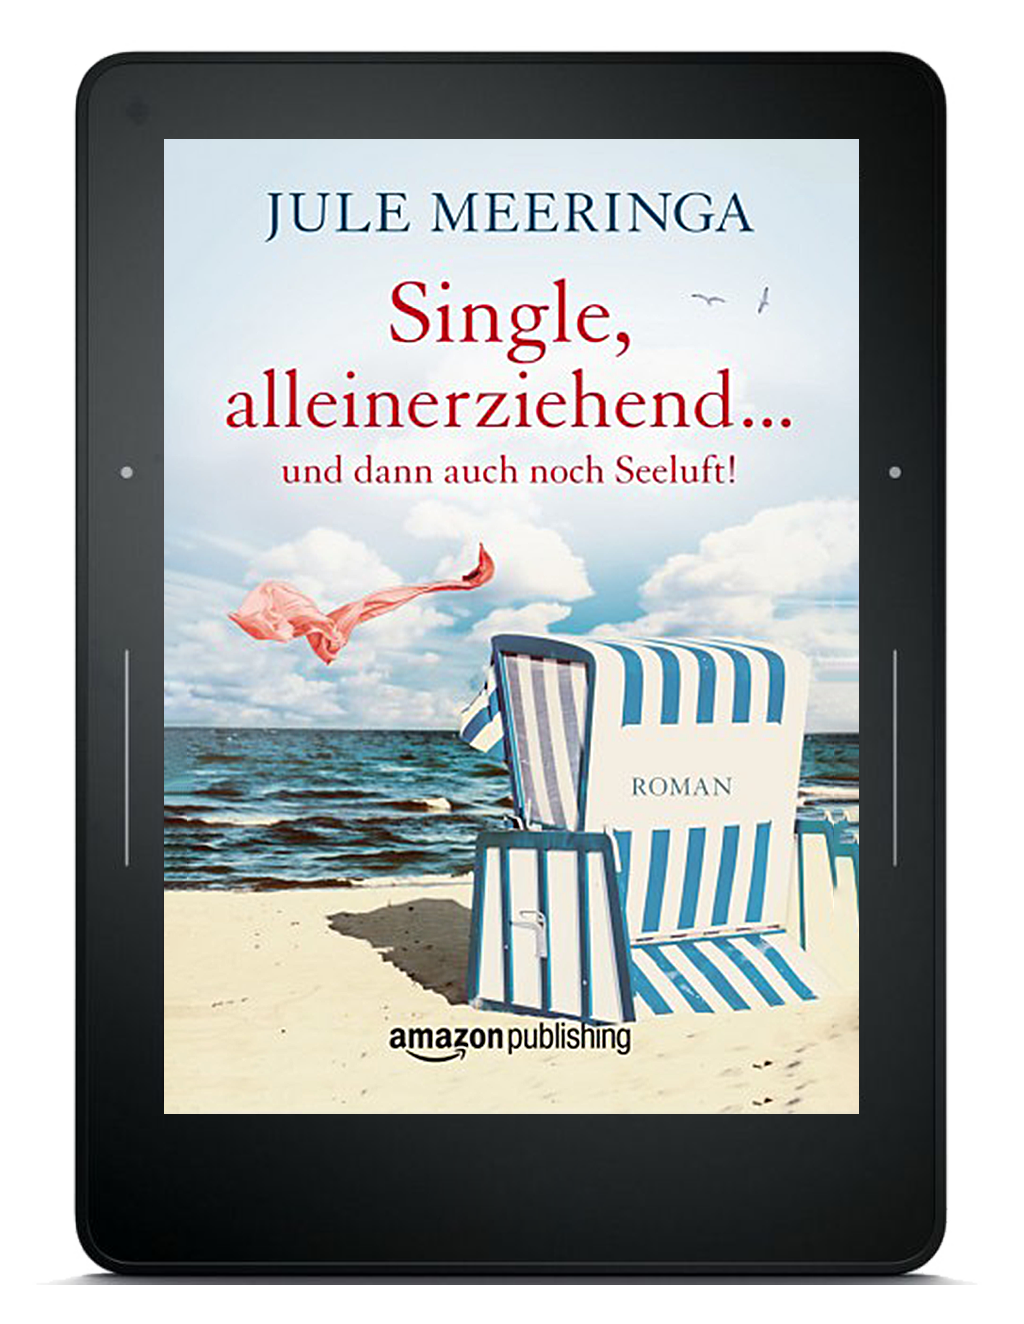 single alleinerziehend